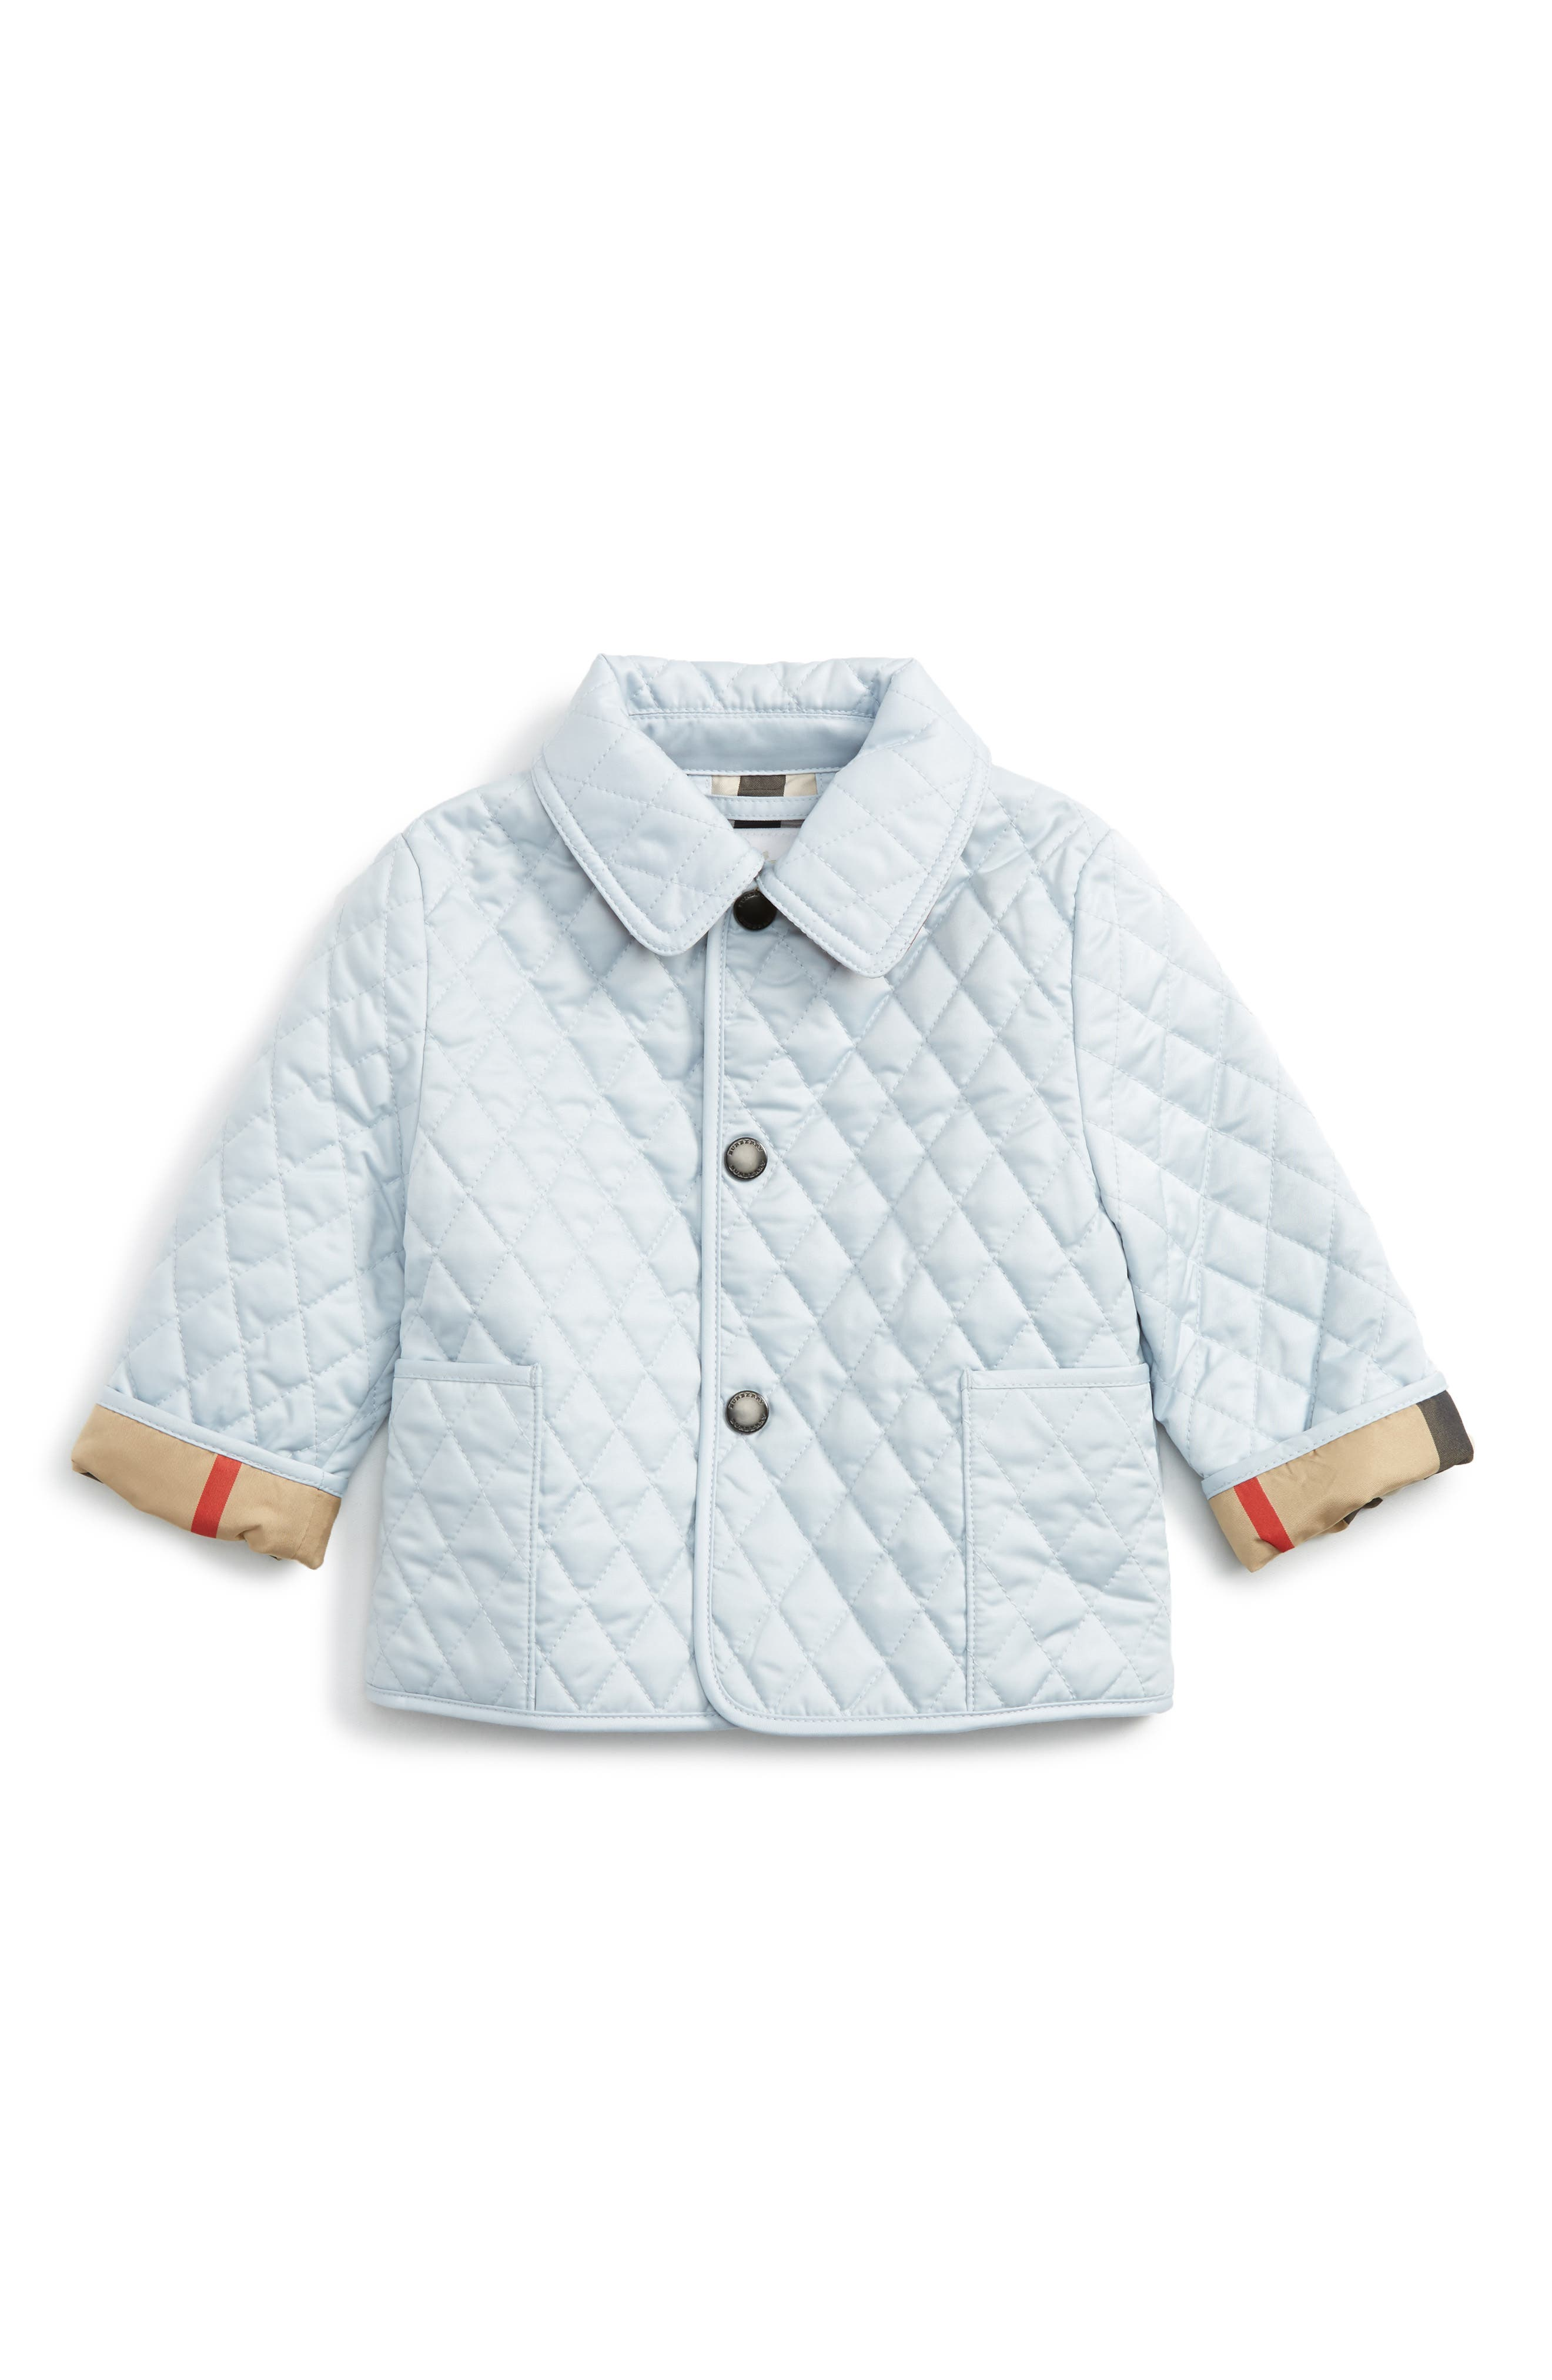 Colin Quilted Jacket,                             Main thumbnail 1, color,                             428